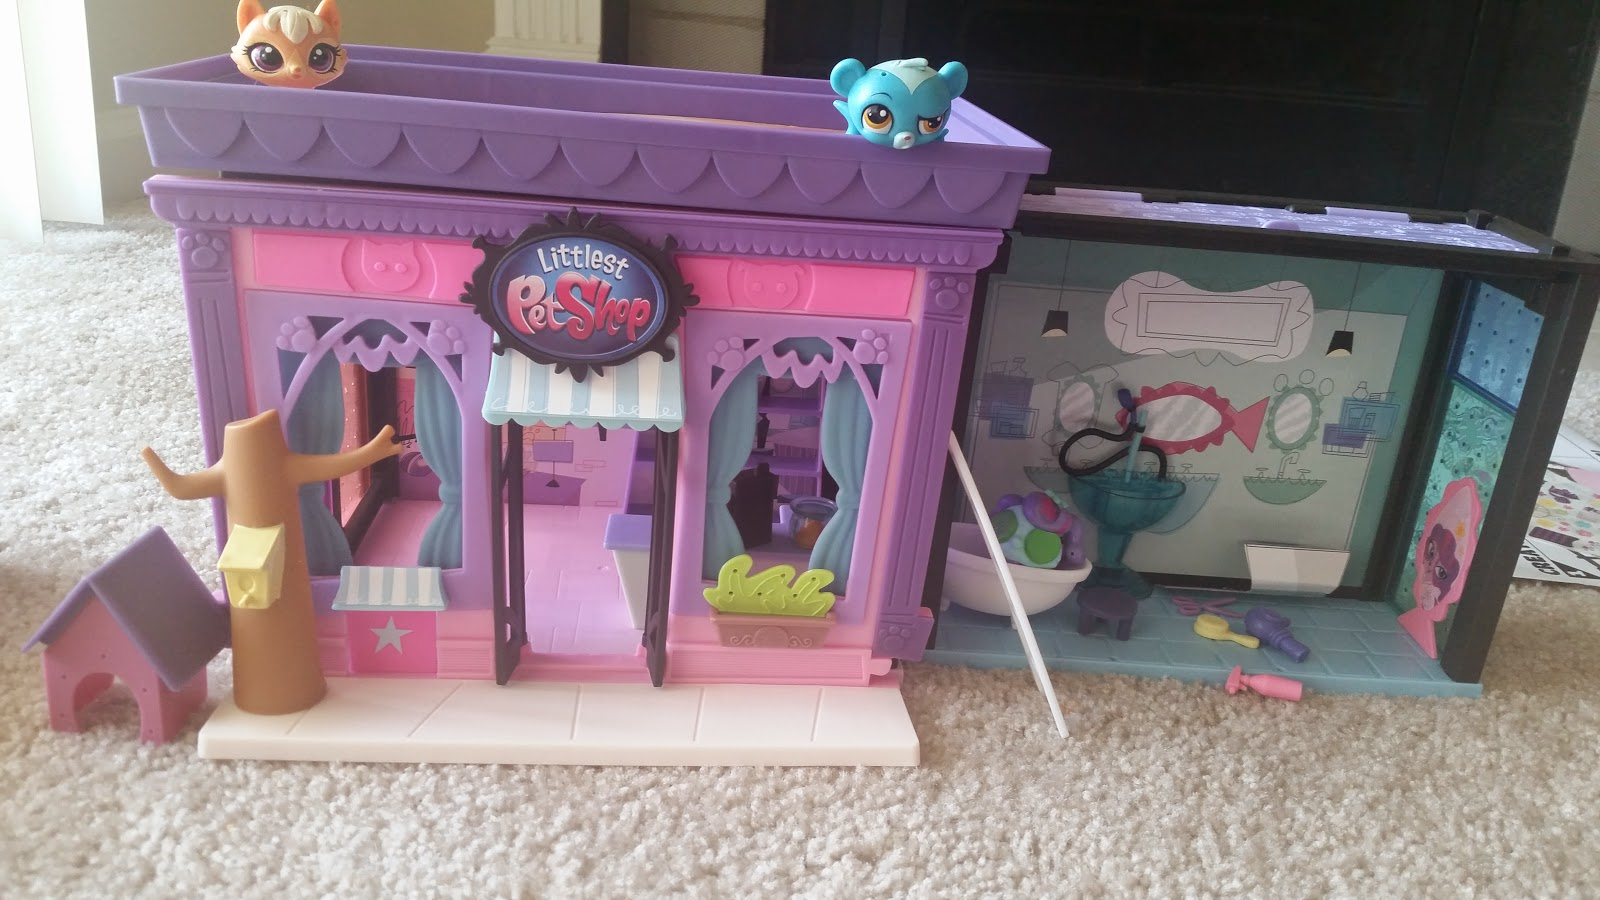 Littlest Pet Shop Pawsabilities Collection Sets Review #LPS via www.Productreviewmom.com